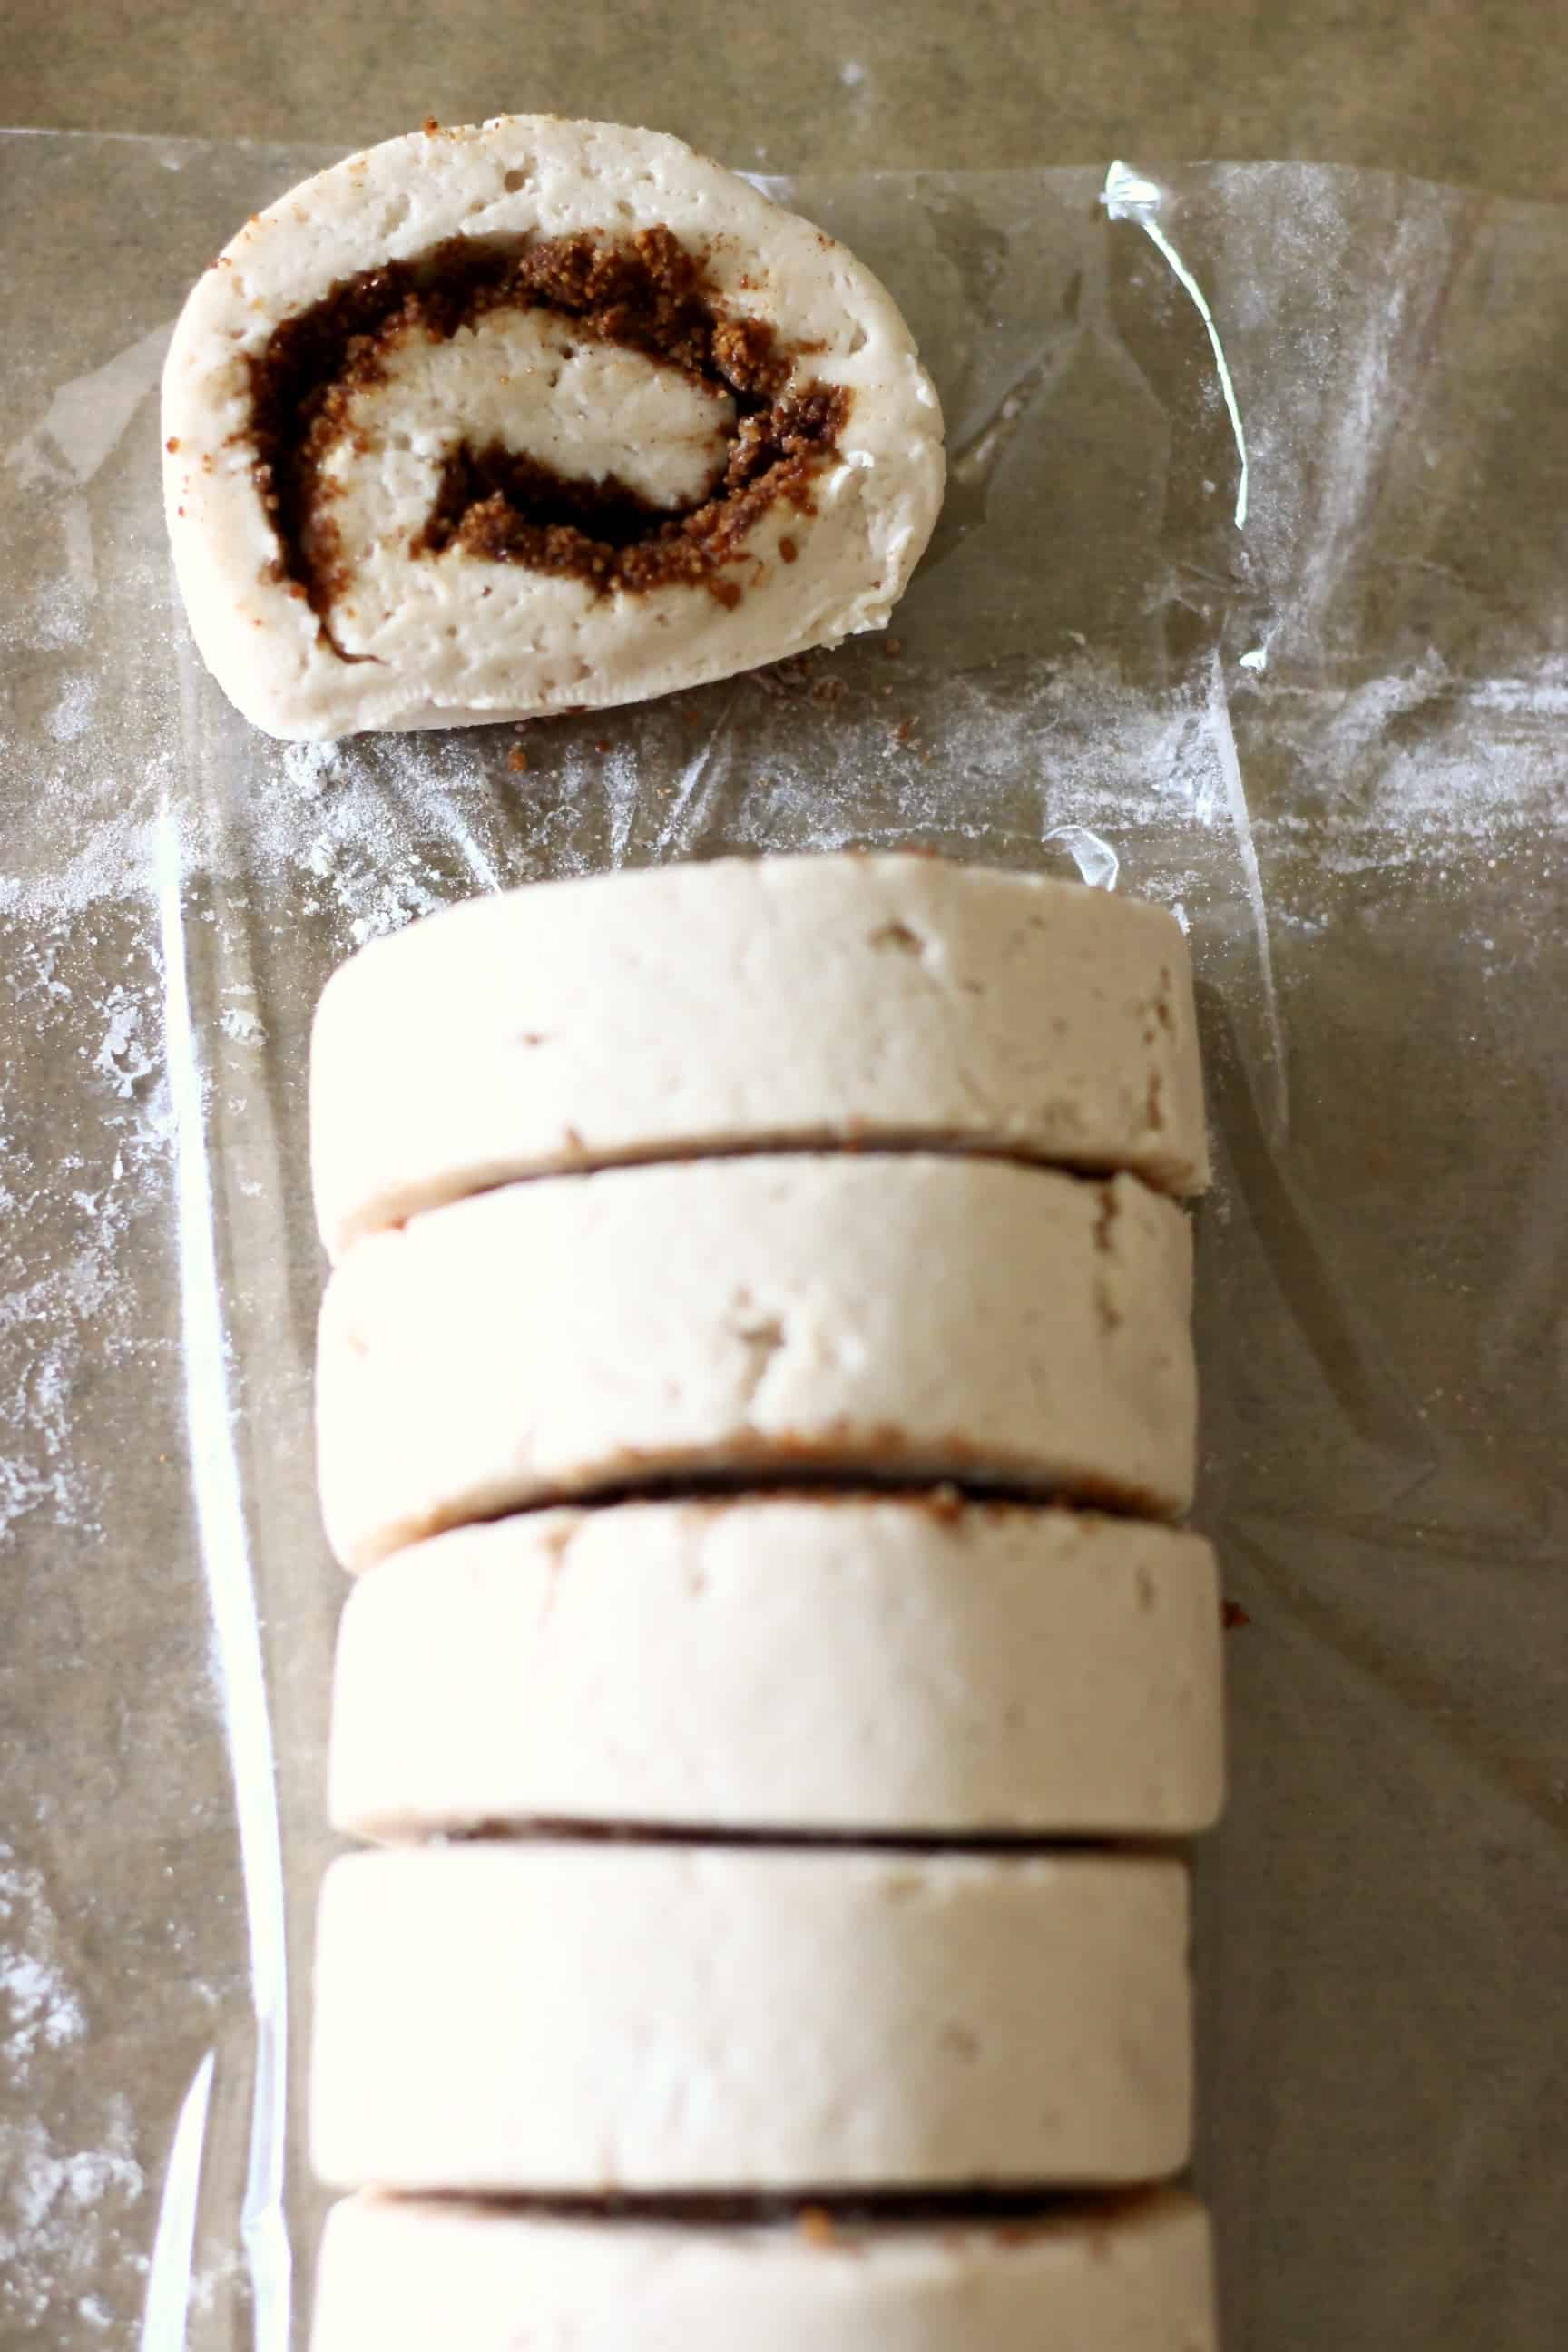 A roll of gluten-free vegan cinnamon roll dough filled with cinnamon sugar being cut into pieces